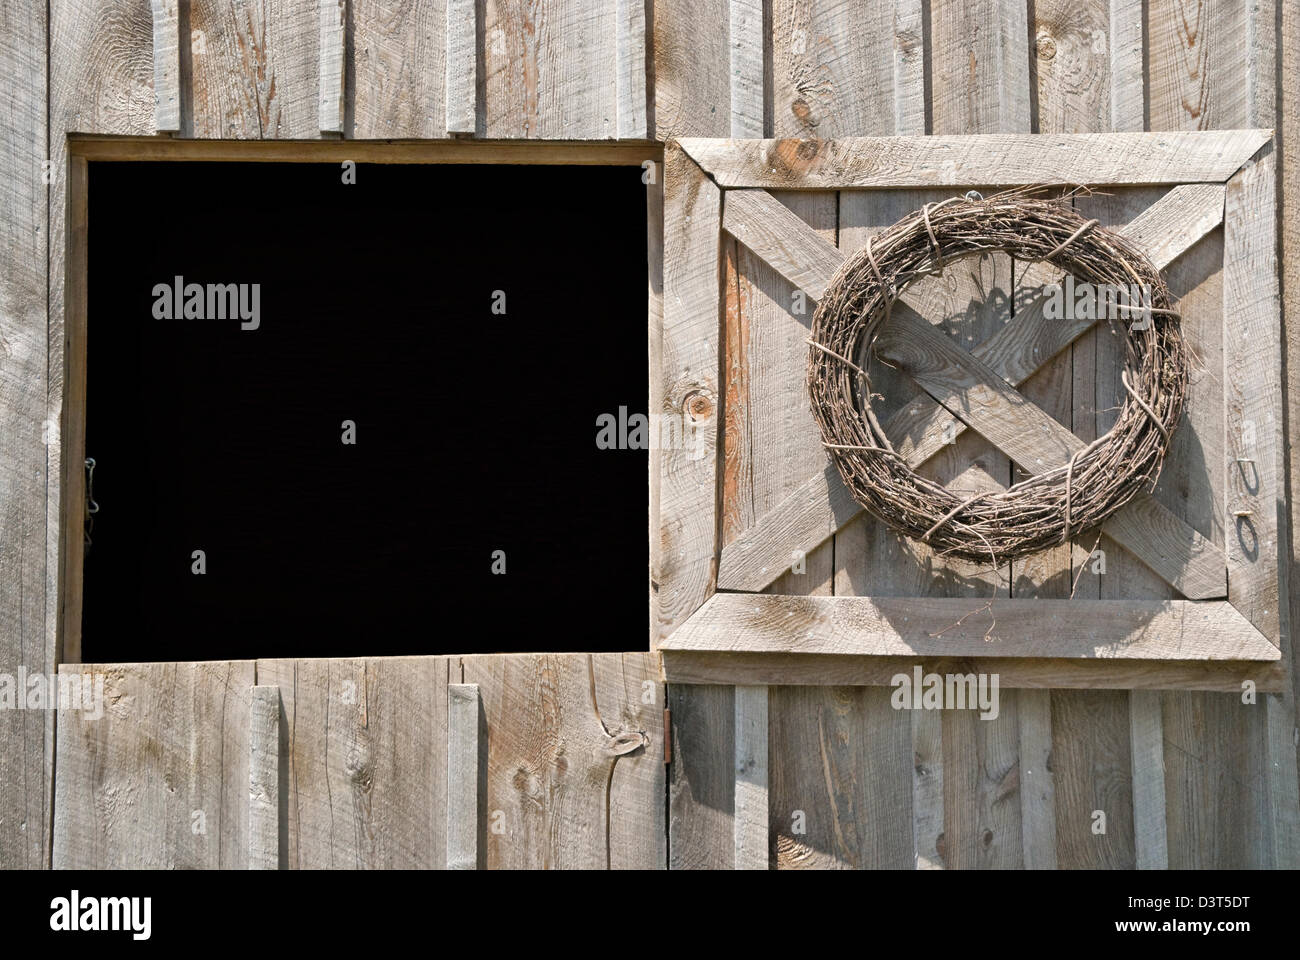 Barn Door Open To Black Background As A Design Element Dutch With Top Half Rustic Weathered Wood Siding